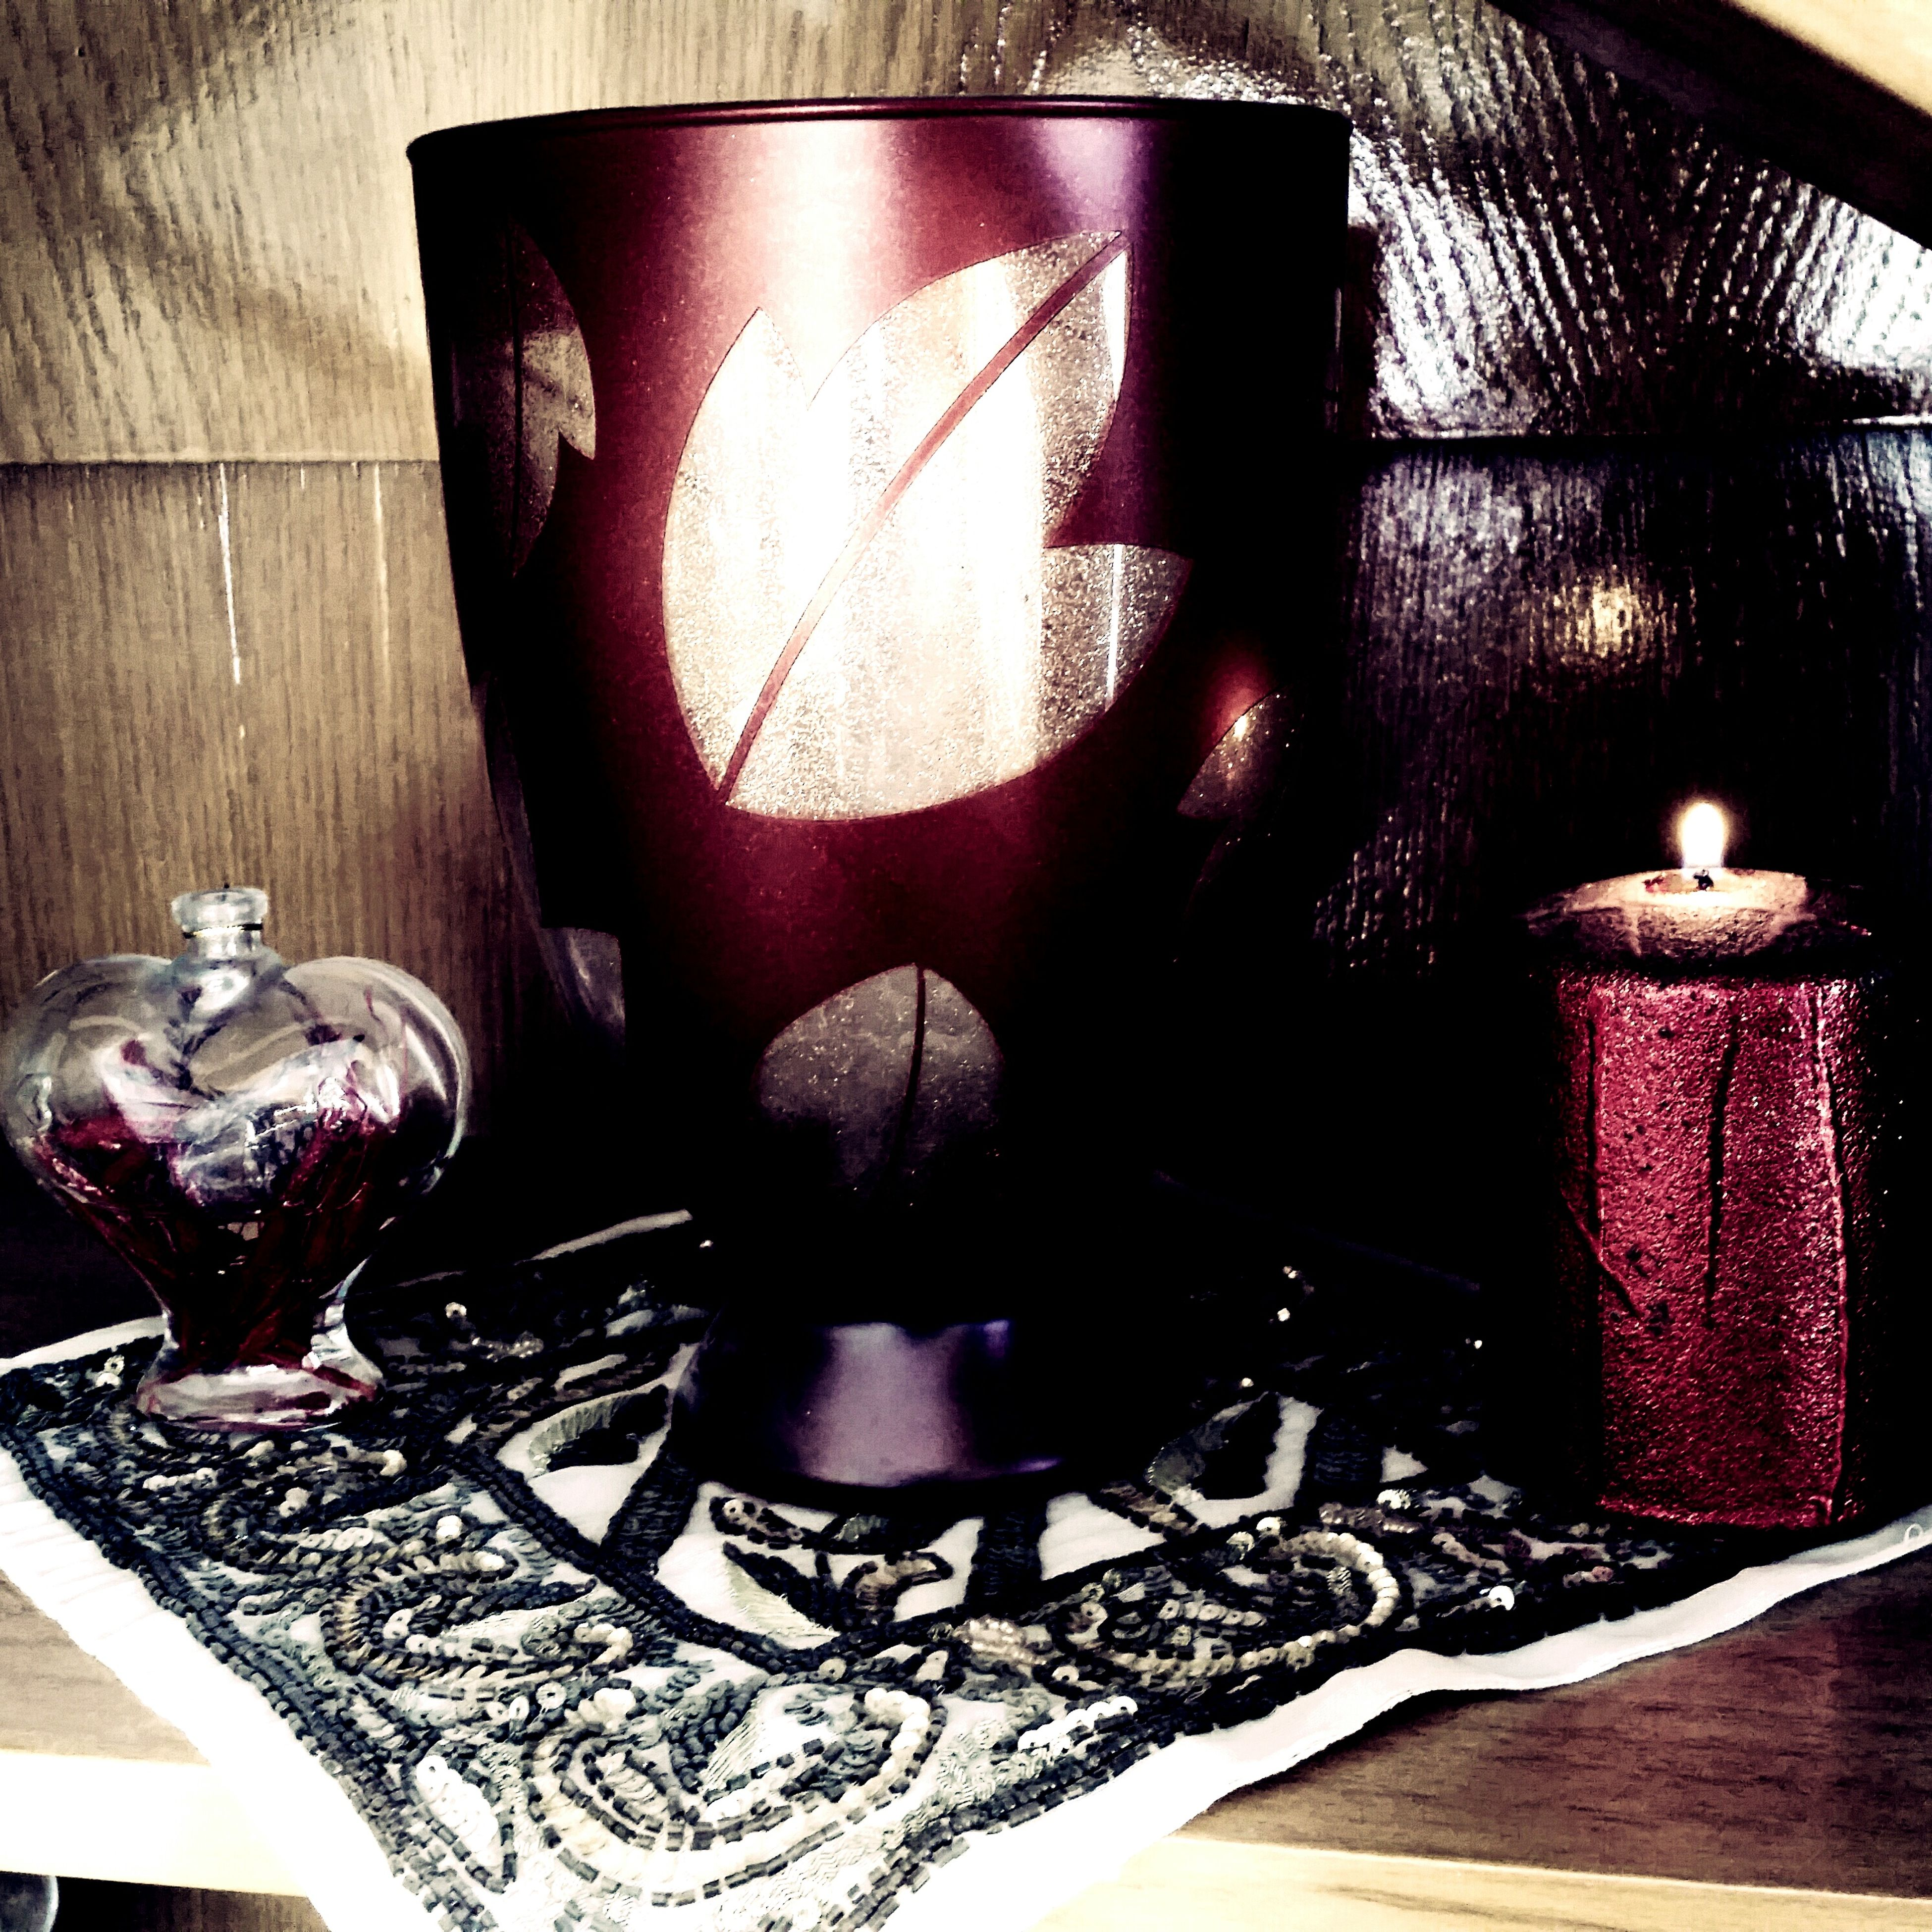 Red Lifee Red Love Candle Flame Beautiful Iwanttobeaphotographer Wannabeaphotographer:) Photolovers ♡ love is feeling...